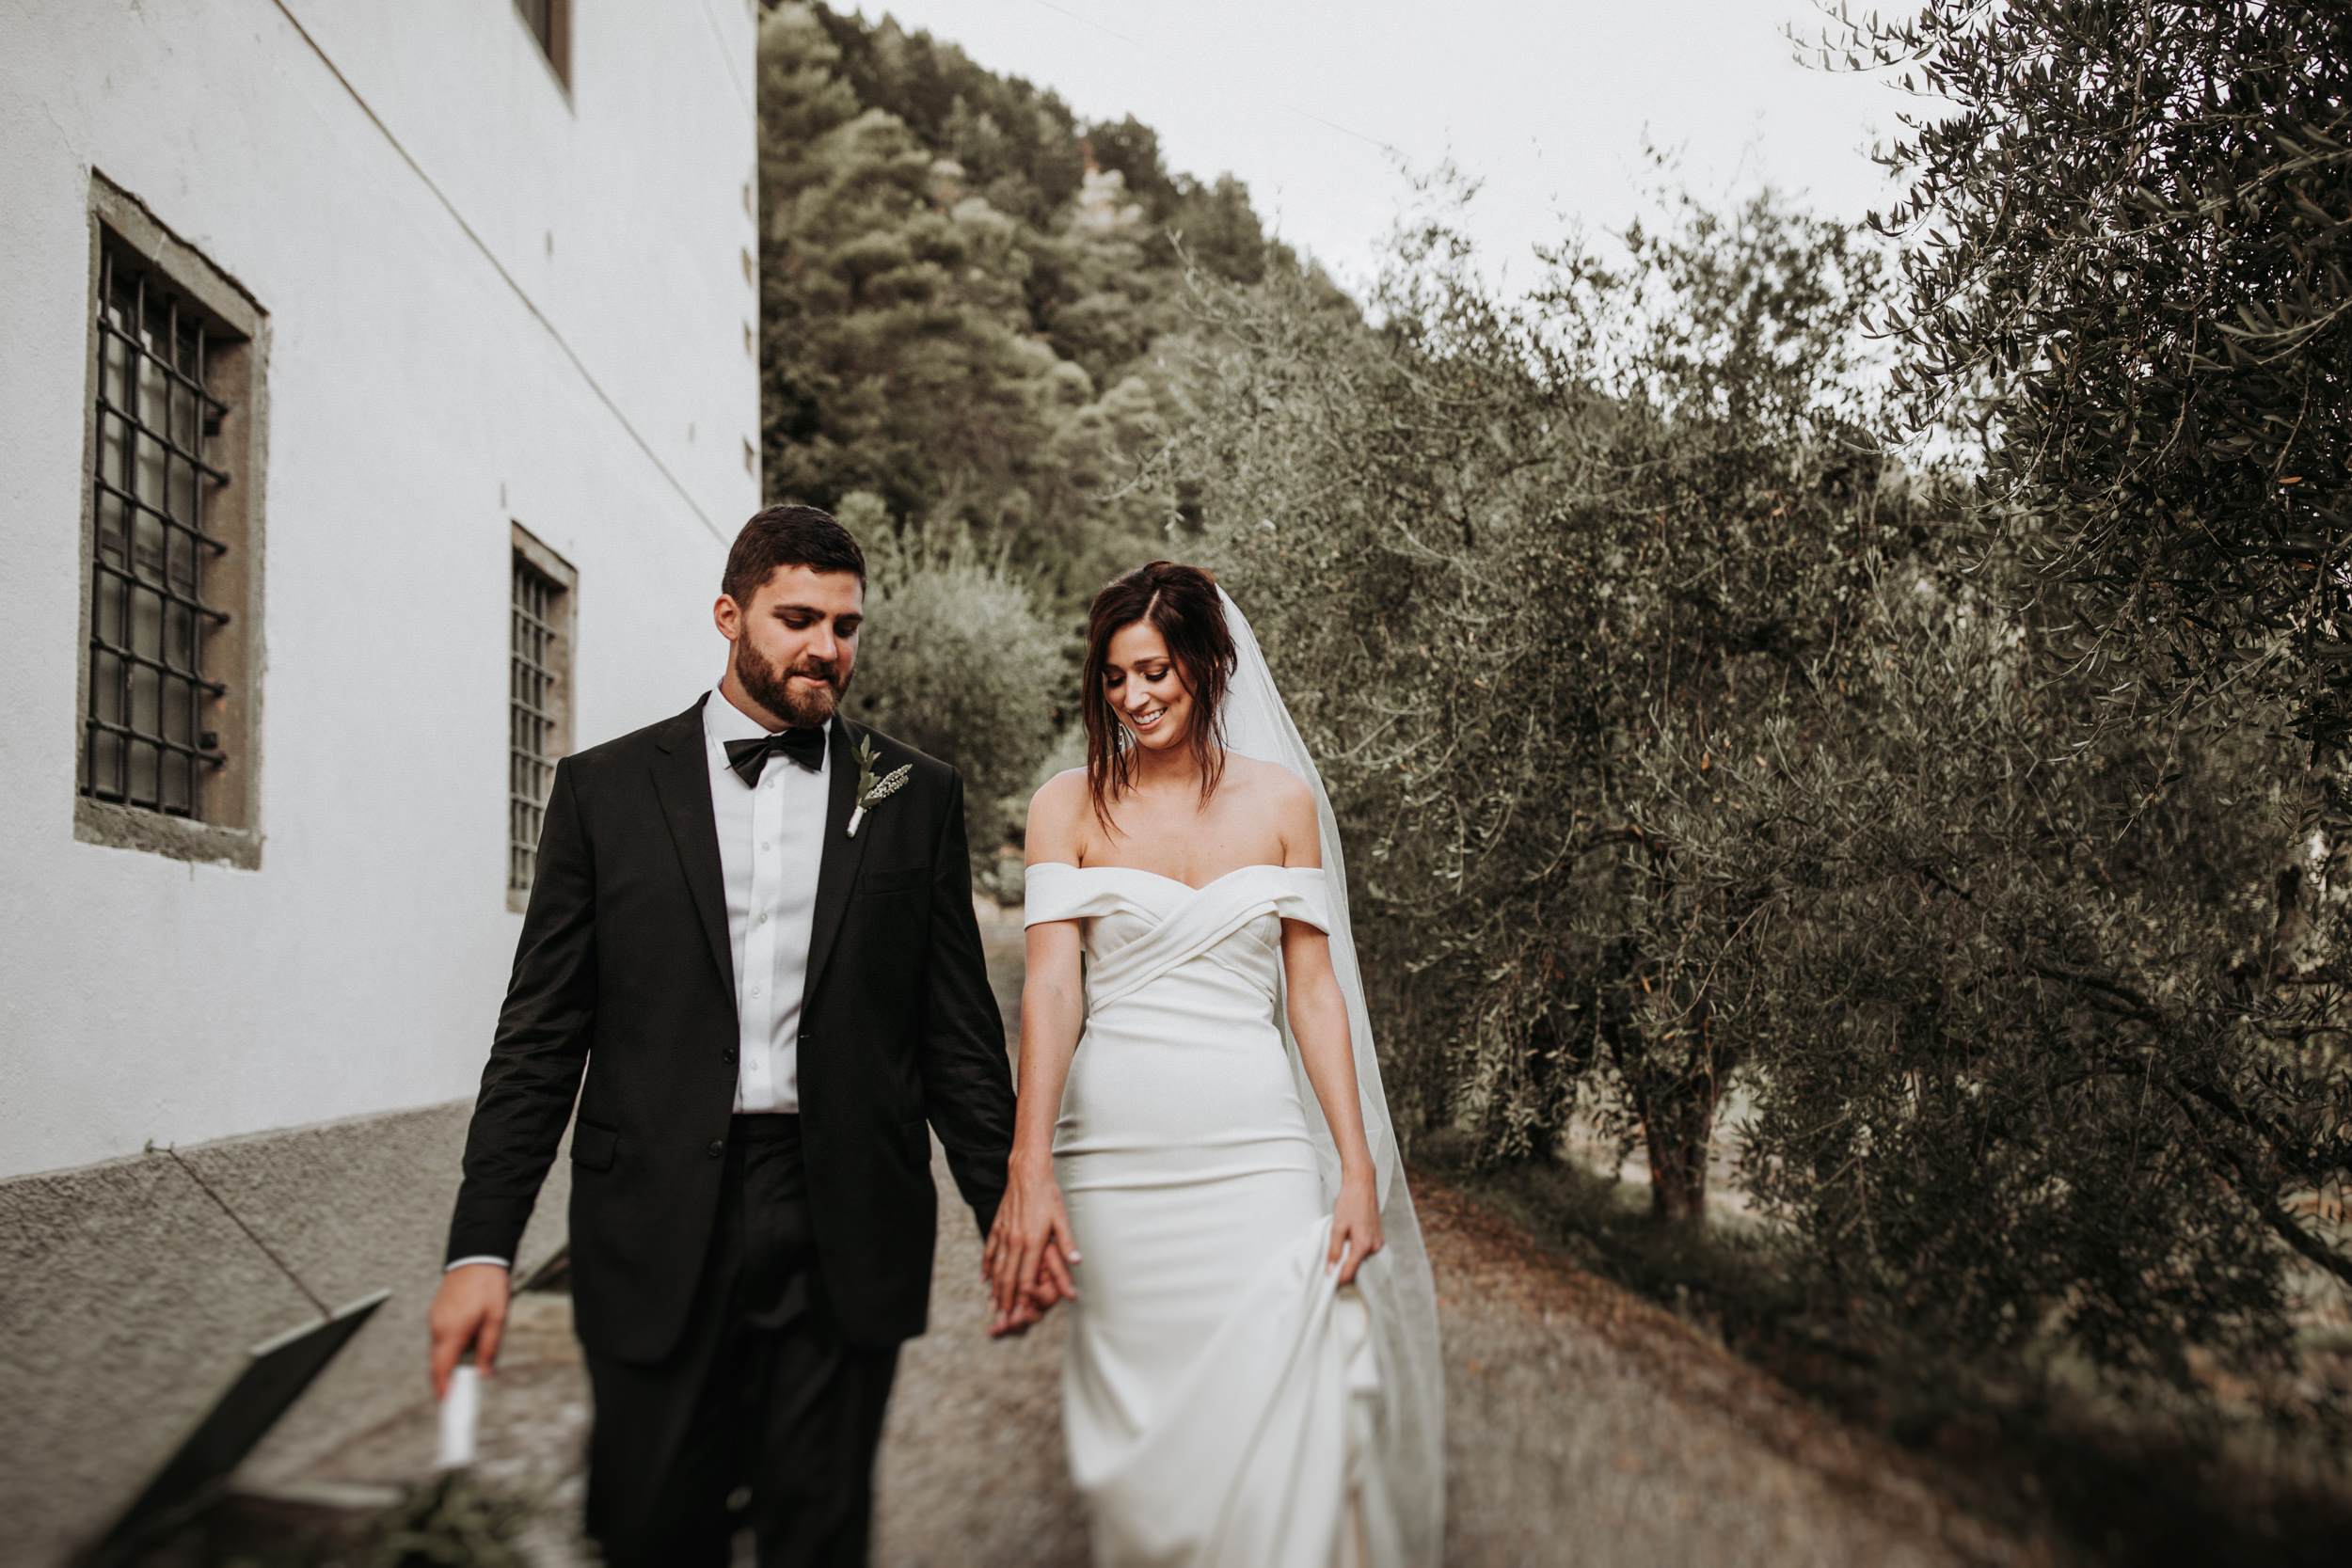 dm_photography_KW_Tuscanyweddingday_371